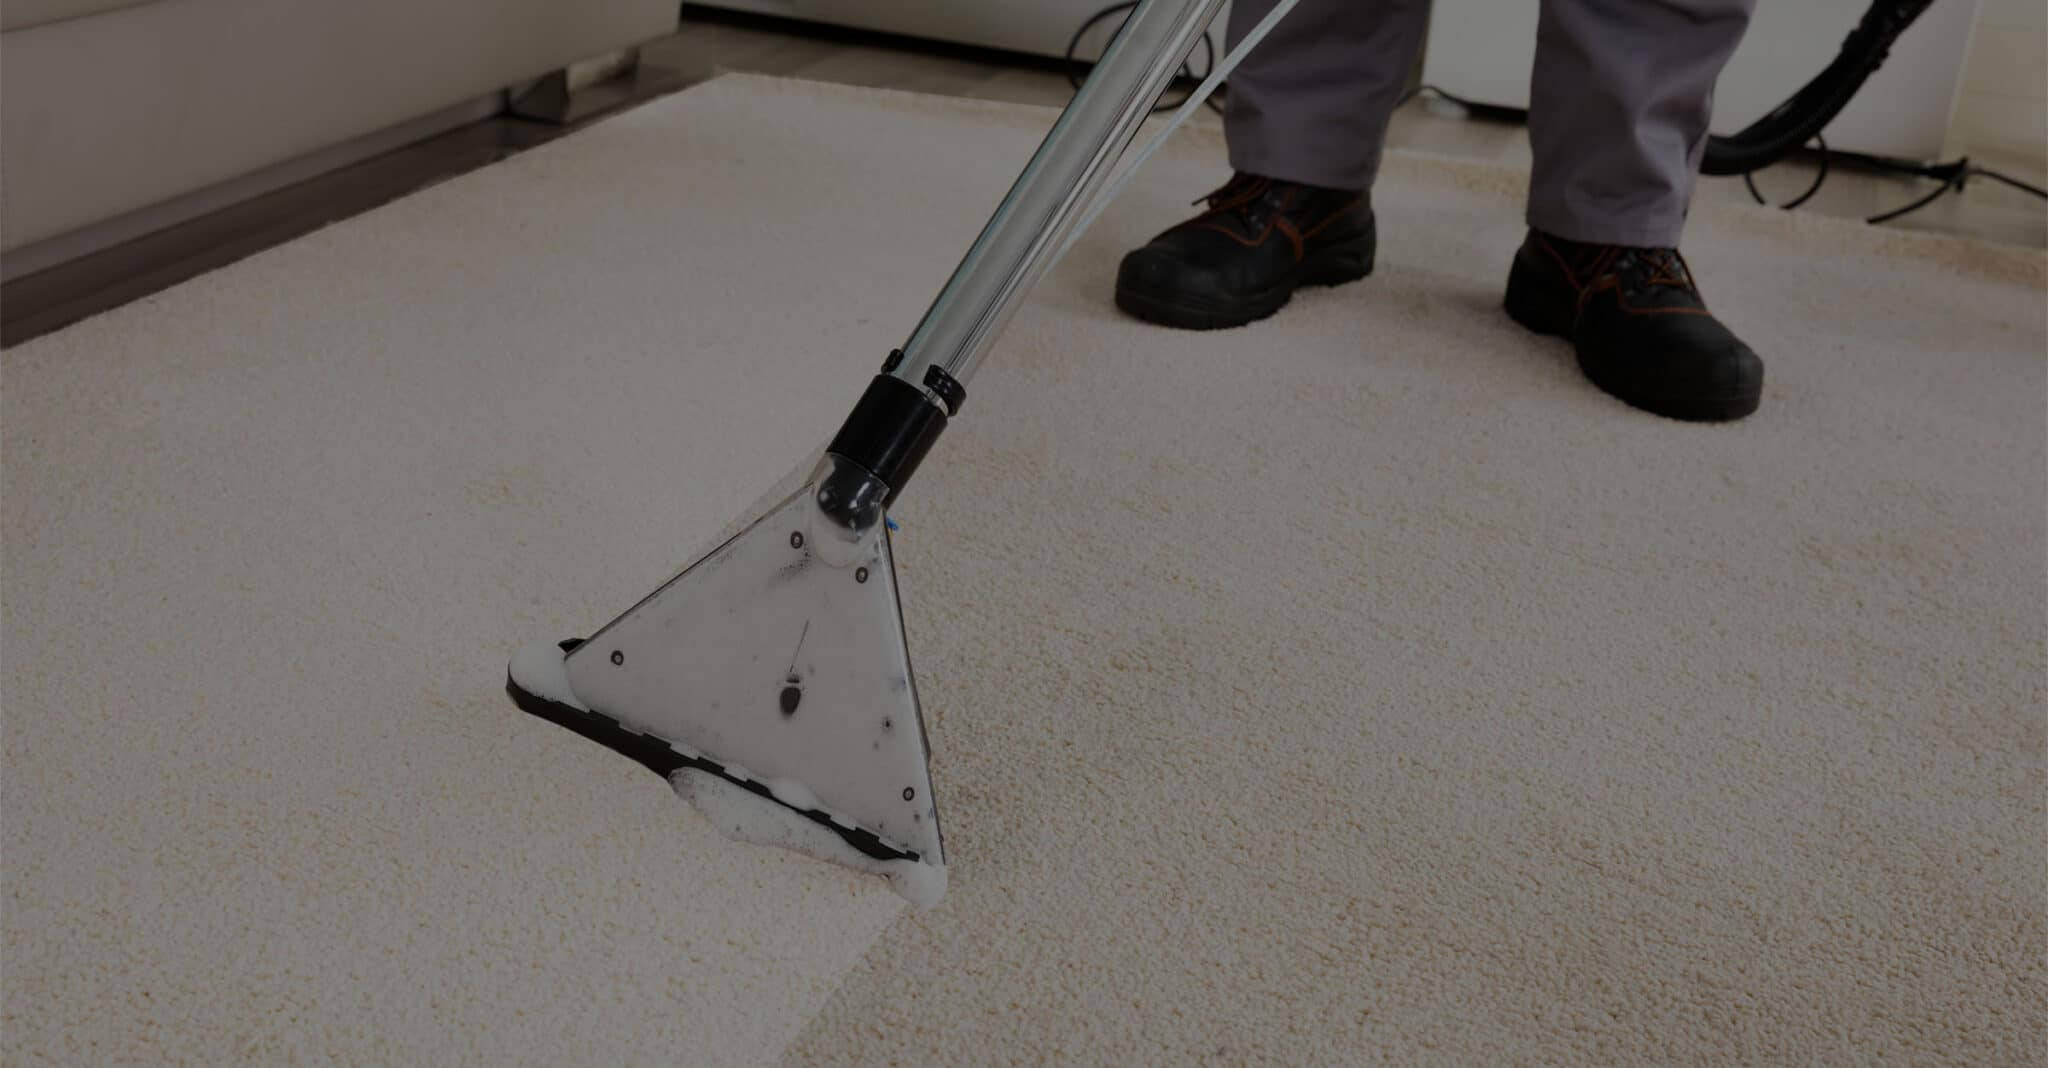 Professional Carpet Cleaning Tulsa Ok Two Birds Home